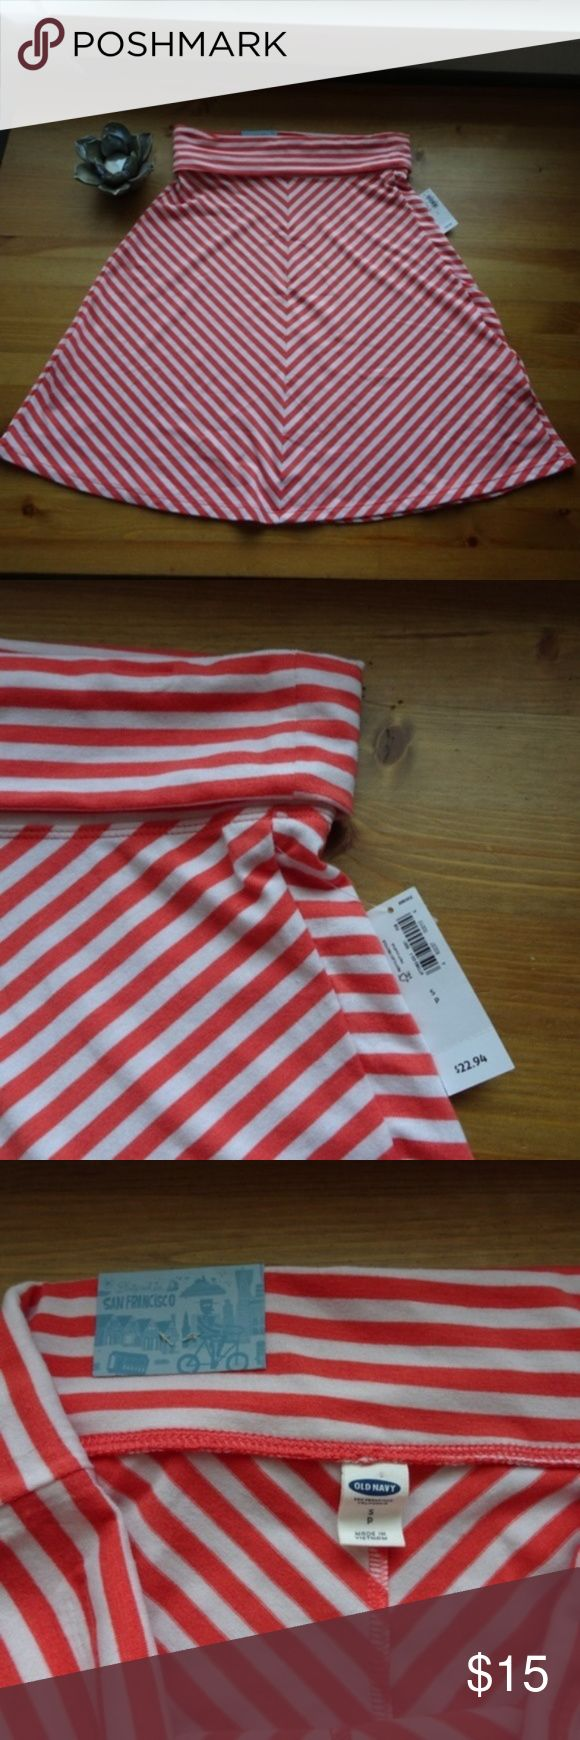 NWT Old Navy Striped Knee Length Skirt NEW Peach / salmon and white striped skirt Folded band at waist Perfect transition to Spring color. Knee length  All items come from a non-smoking home! Old Navy Skirts Midi